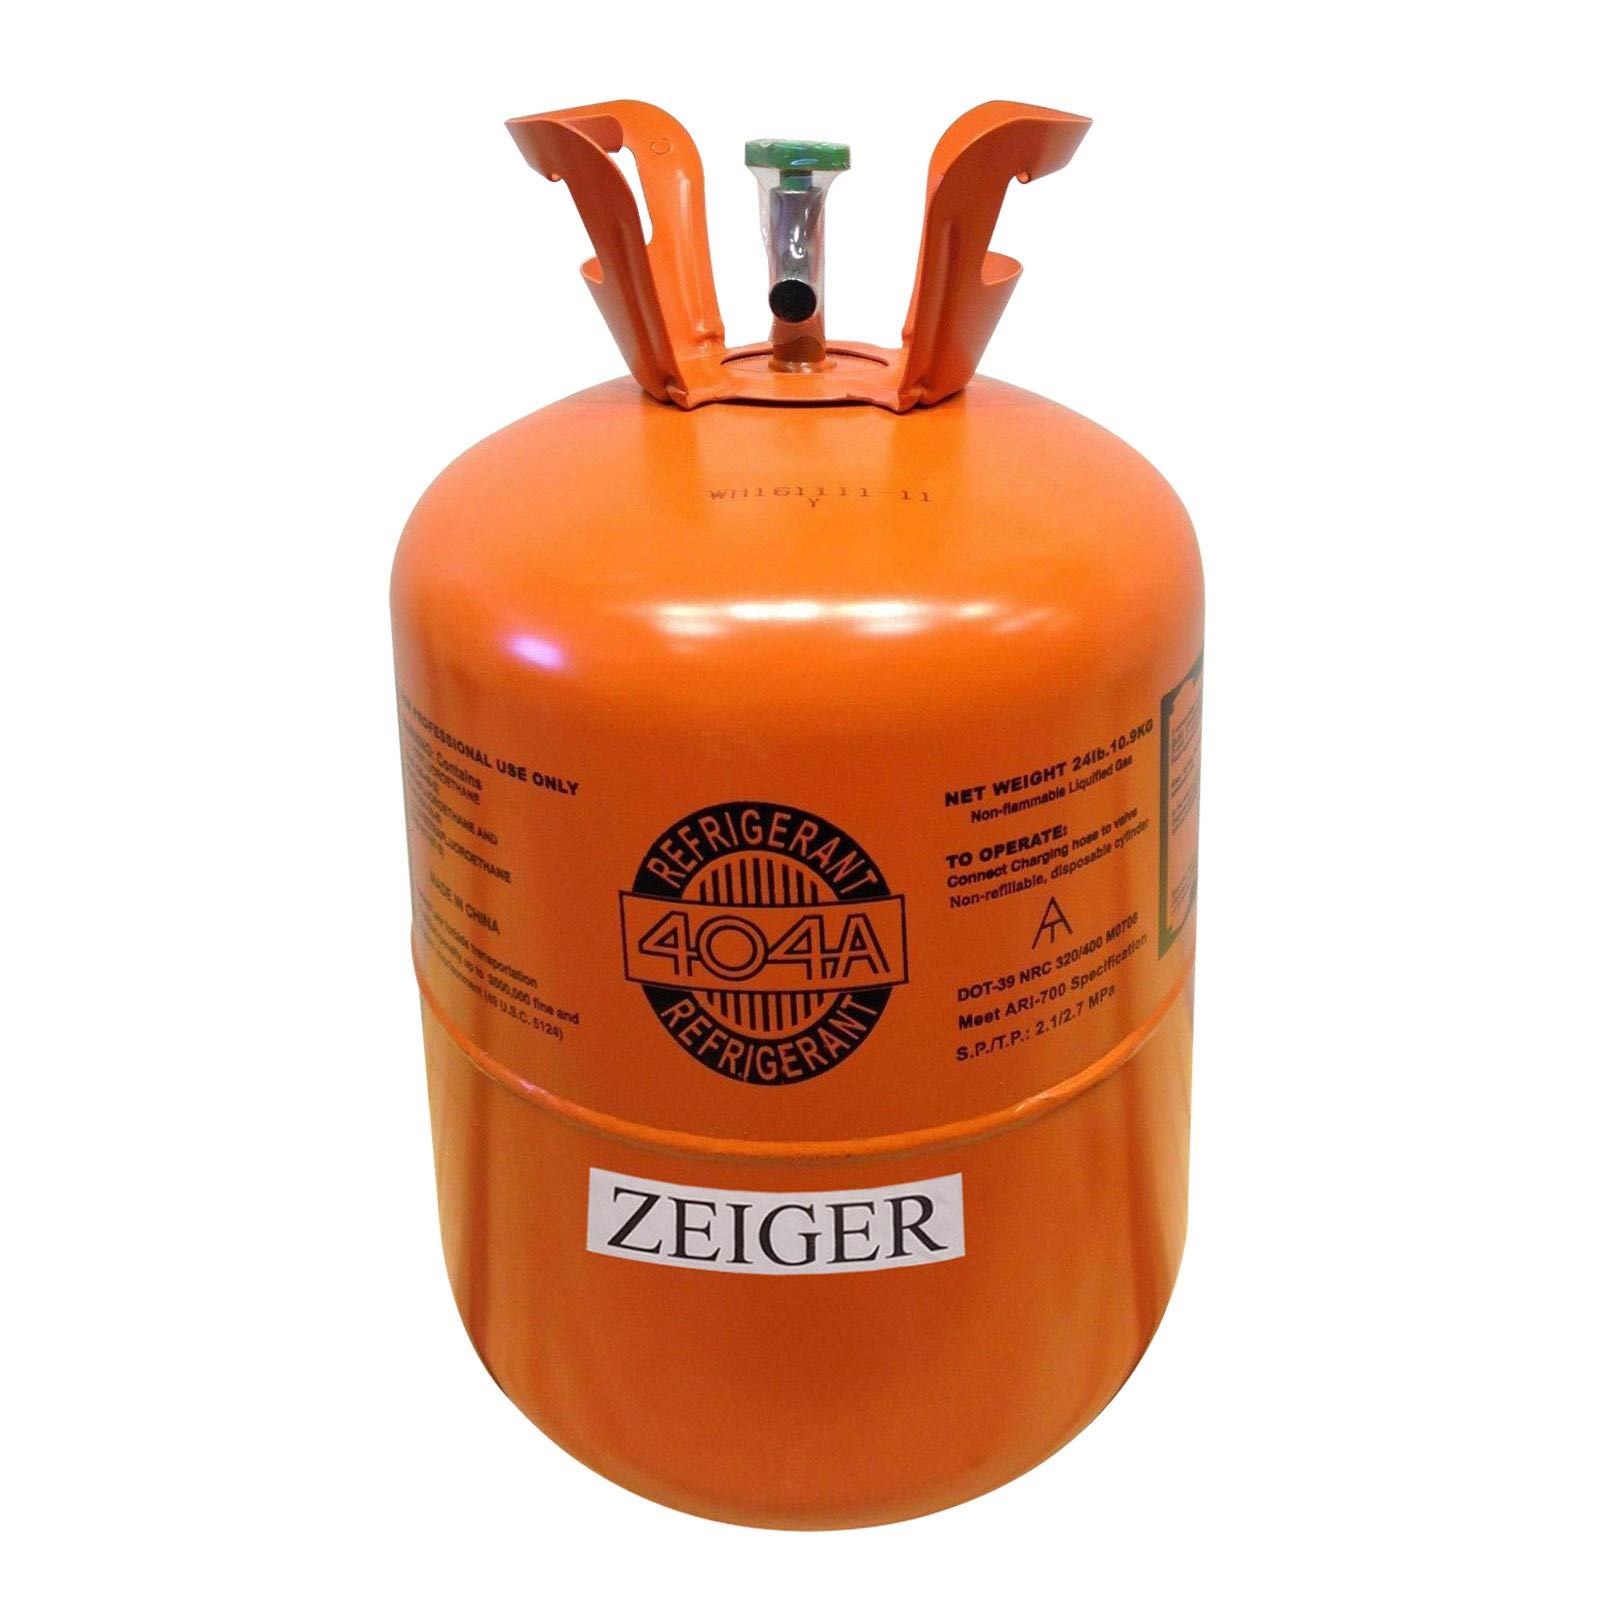 R404A, Refrigerant 404A, Full of R-404A, Net 24LB Tank, Suitable for Freezer, Marine/Commercial/Industrial Equipment by Zeiger